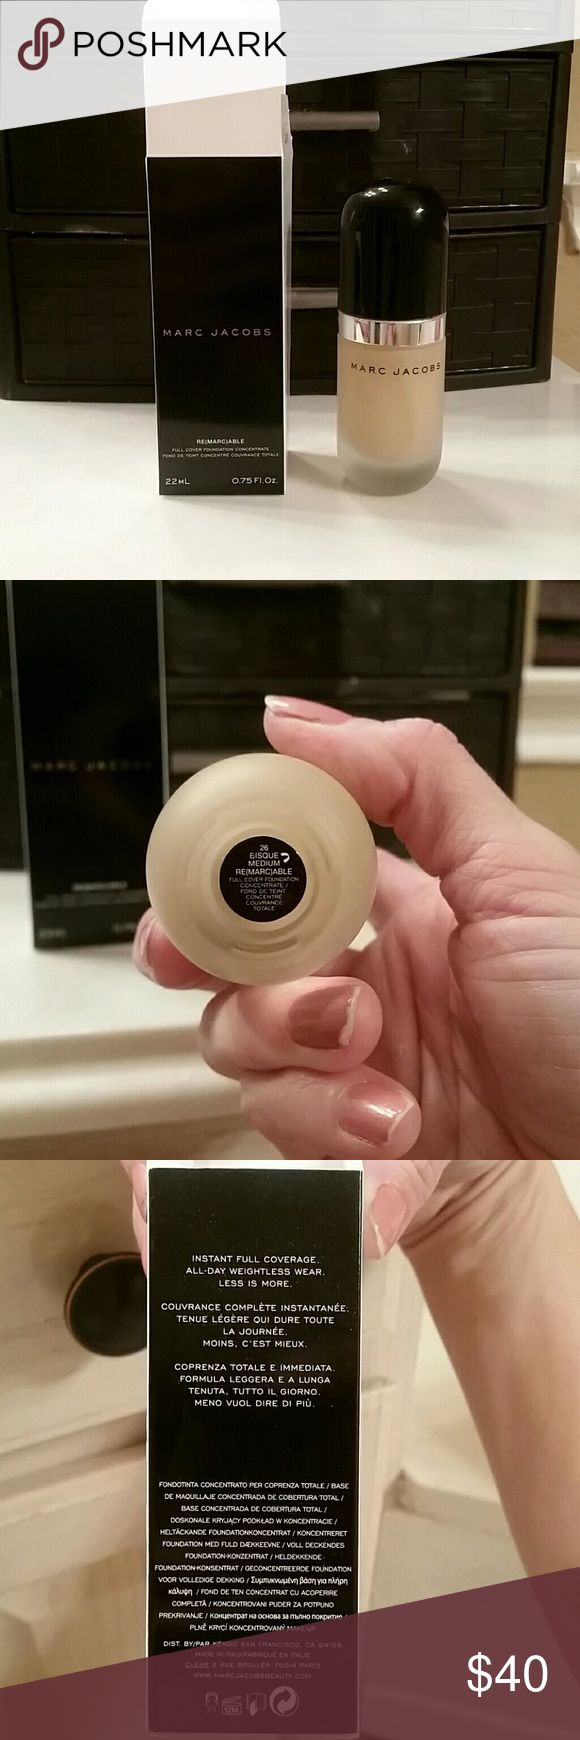 Marc Jacobs Remarkable Foundation in 26 Medium This is a full coverage light weight foundation. A little really goes a long way! I've had this for about 6 weeks, its just not my color. Paid $55 at Sephora Marc Jacobs Makeup Foundation